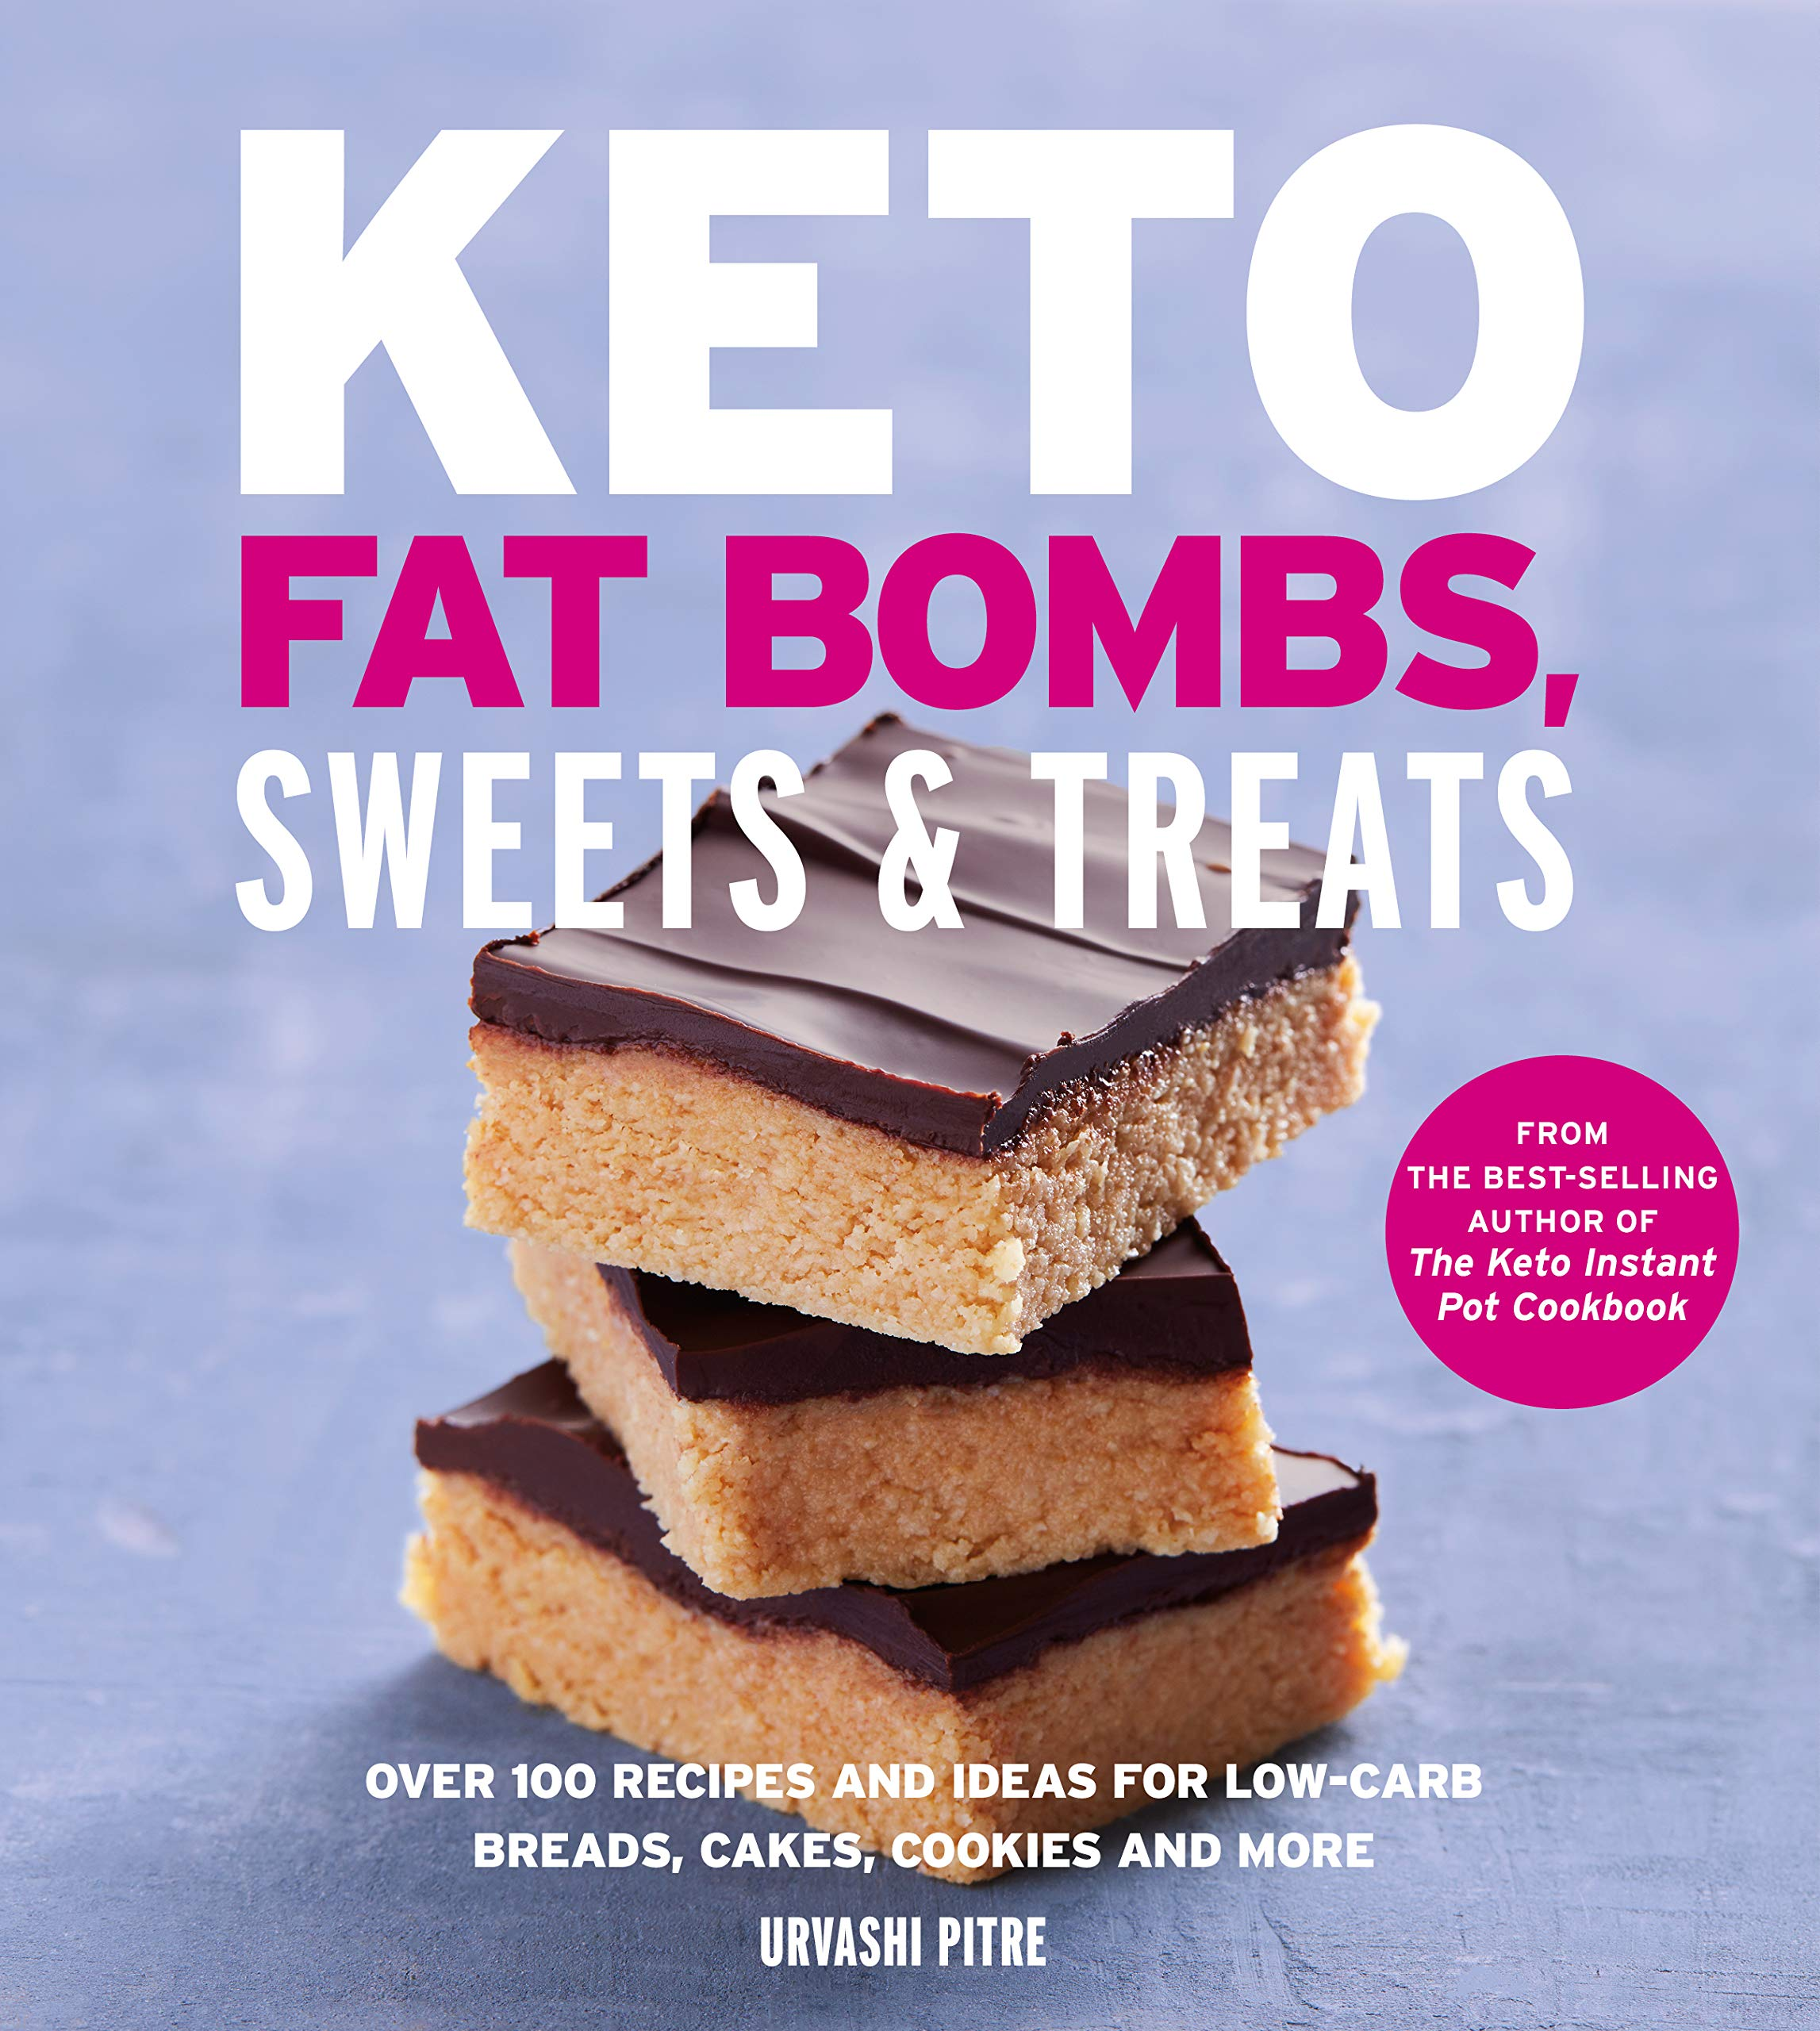 Lets Make A Deal Keto Sweets June 2020